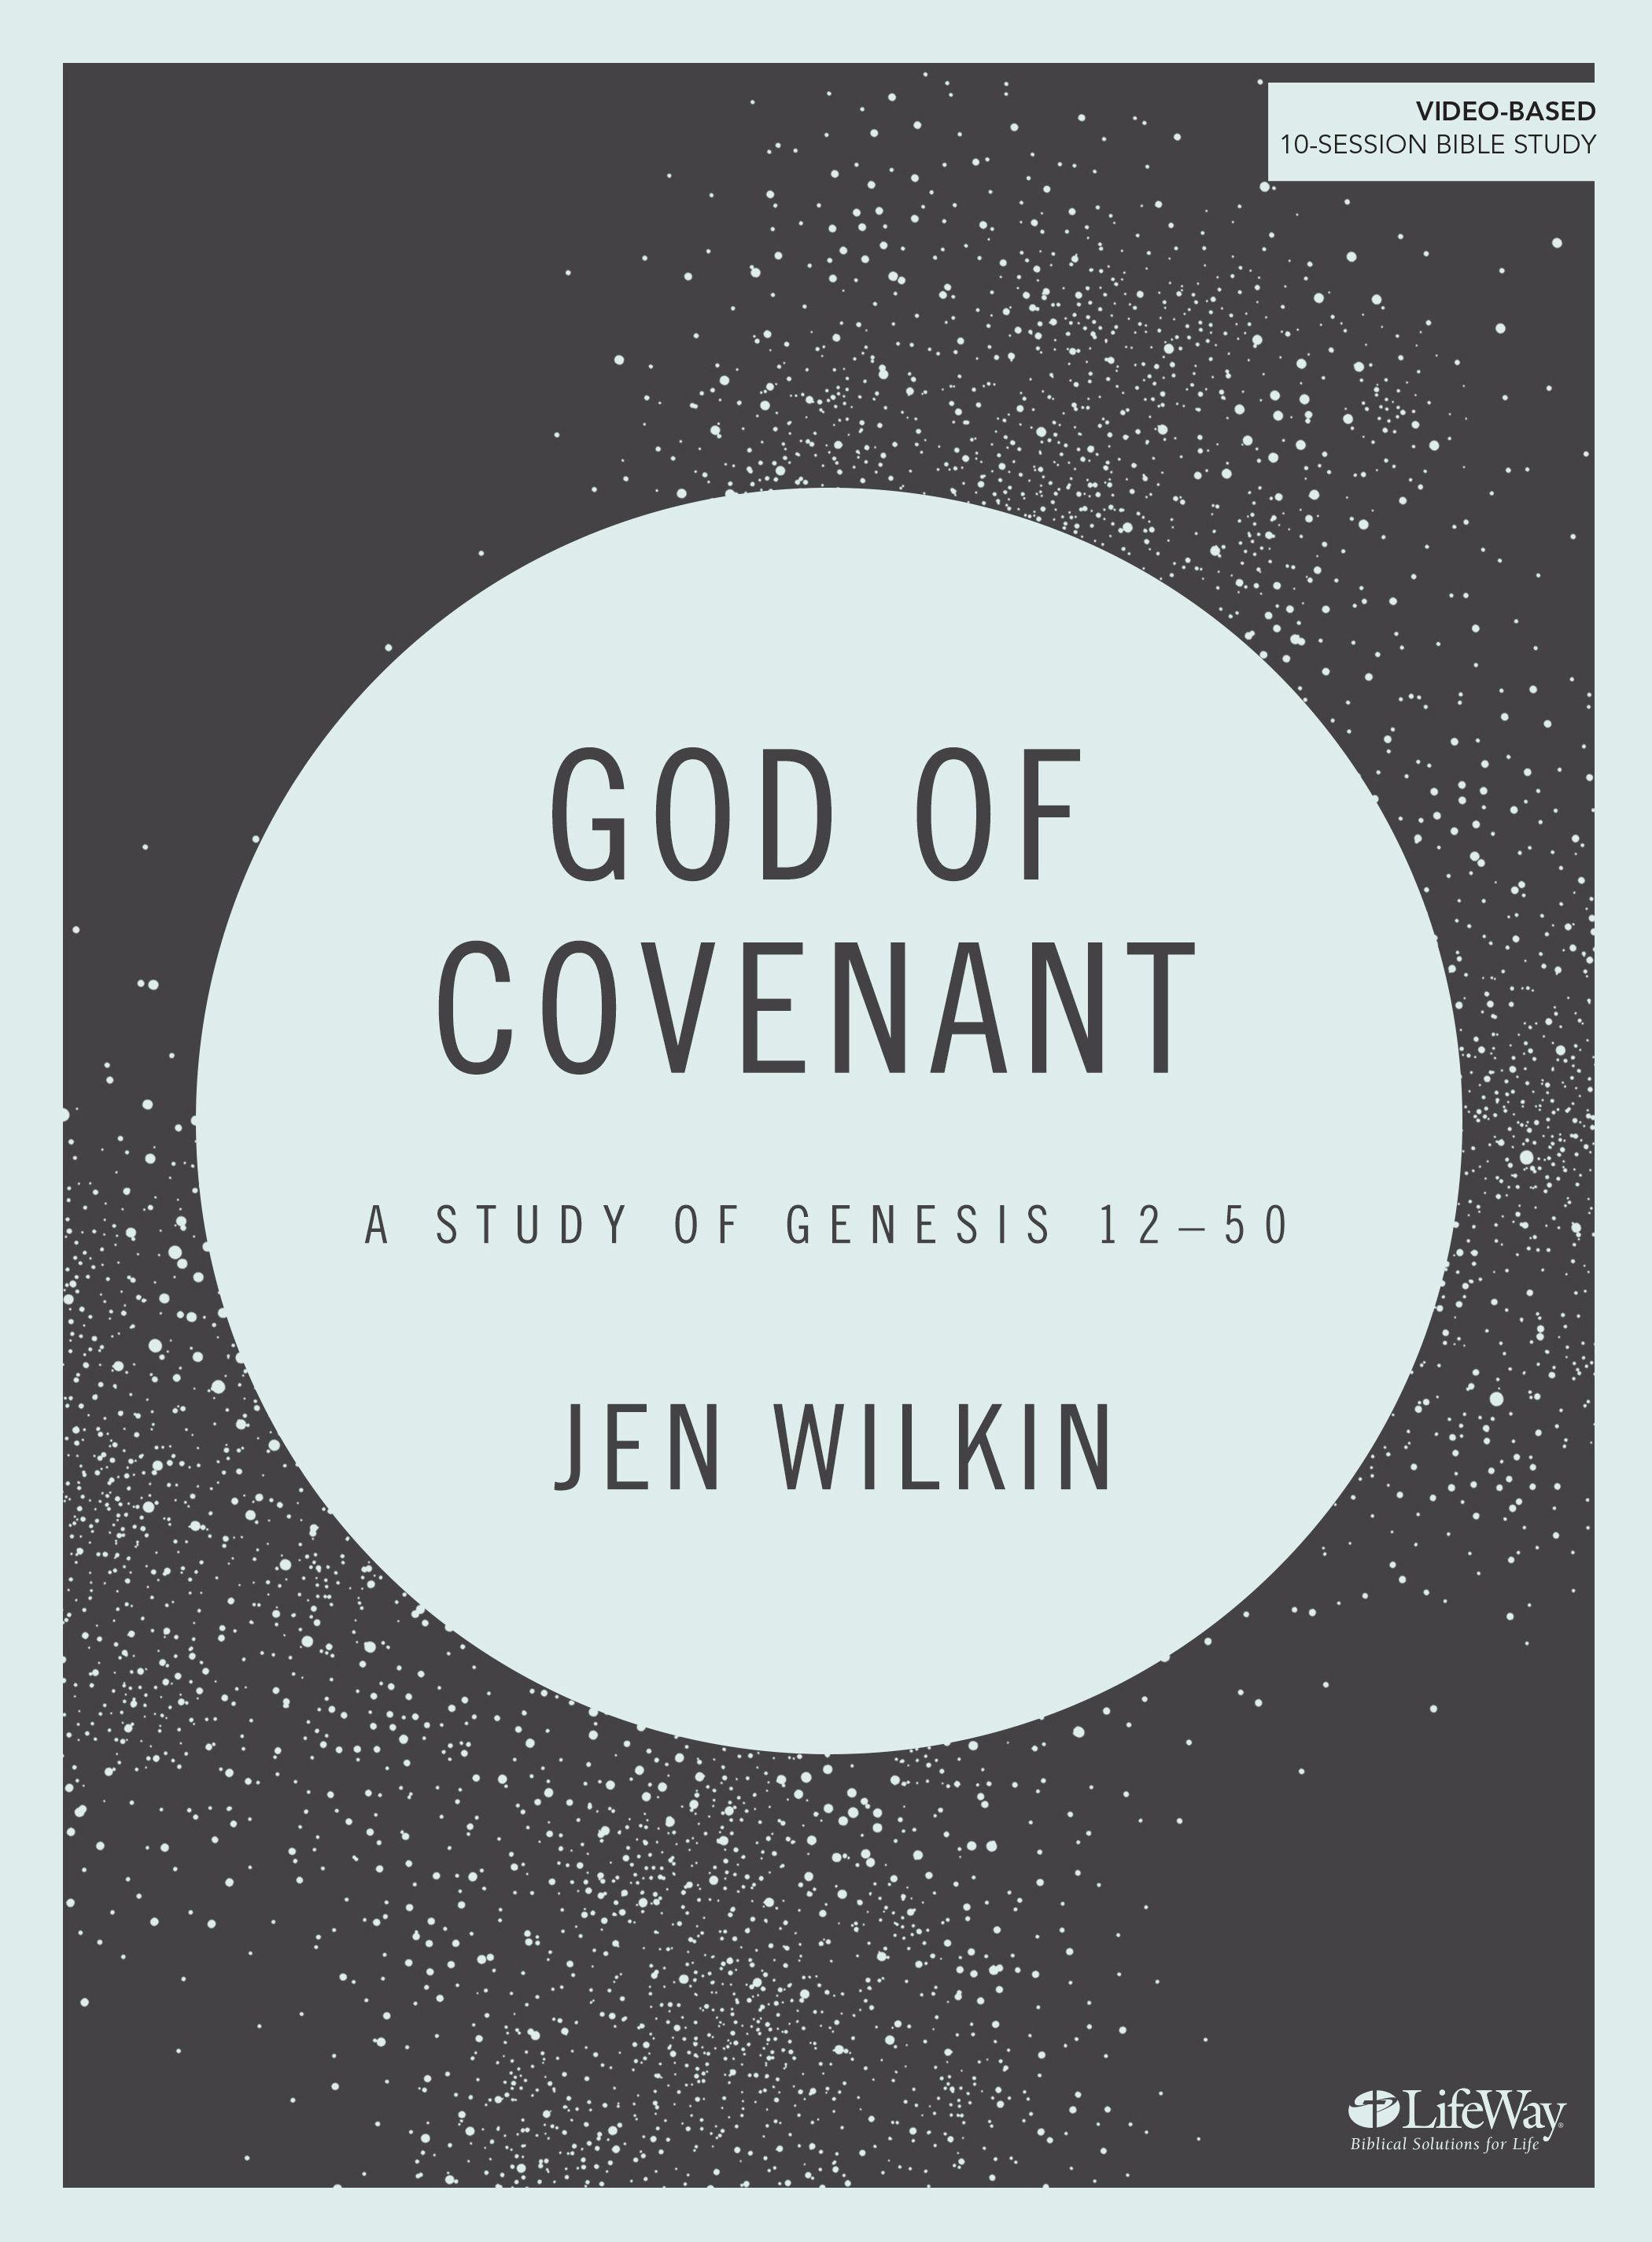 God of Covenant